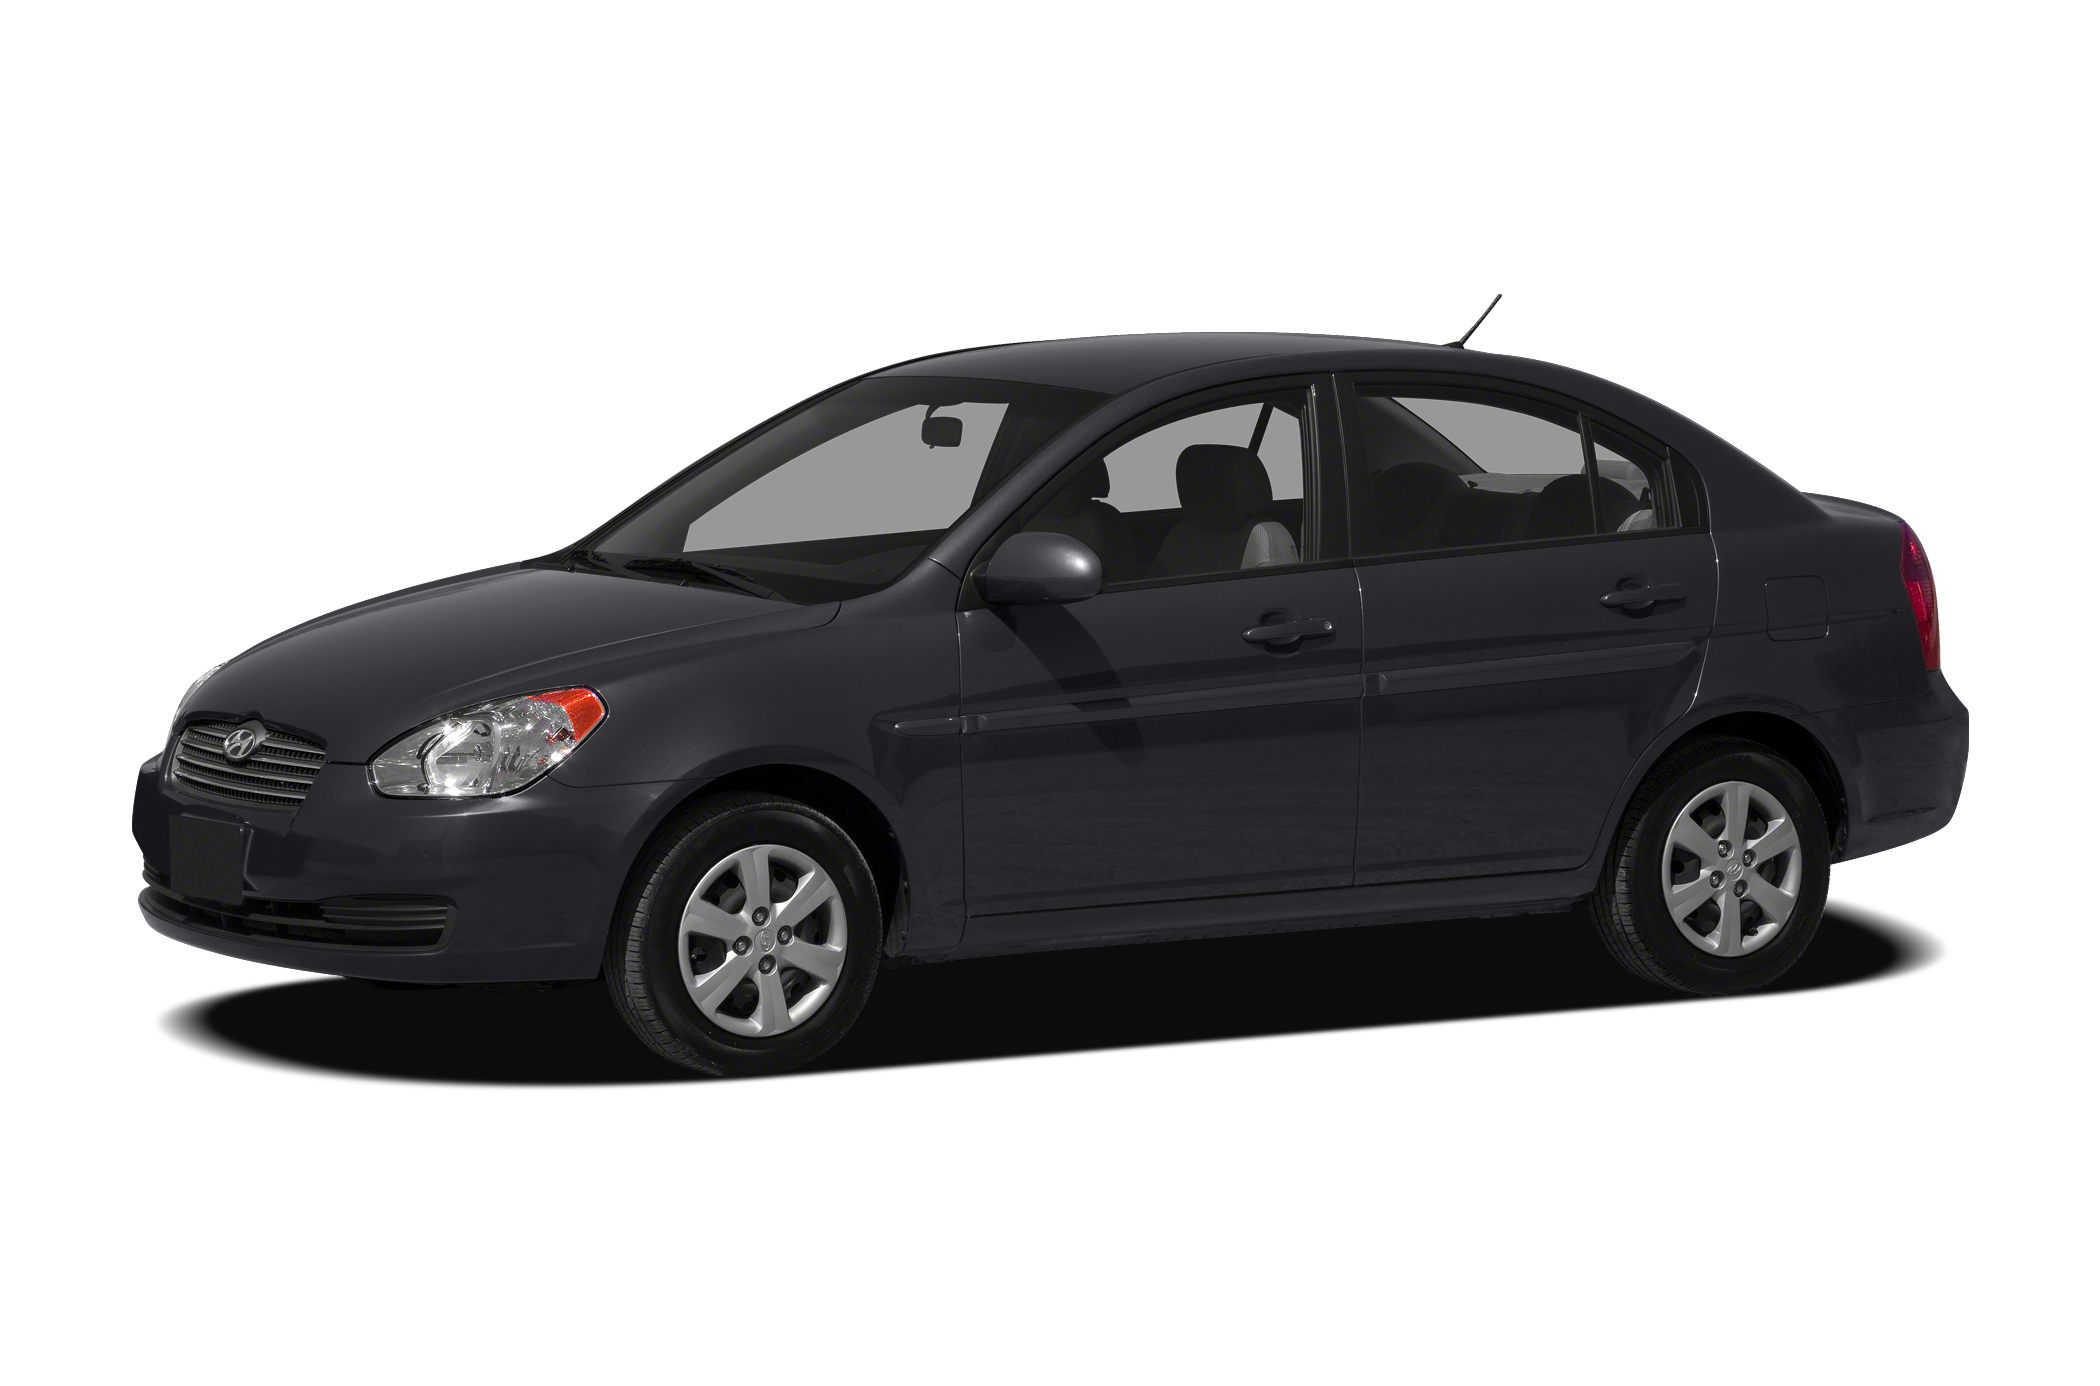 2009 Hyundai Accent GLS Sedan for sale in Jesup for $8,990 with 94,085 miles.